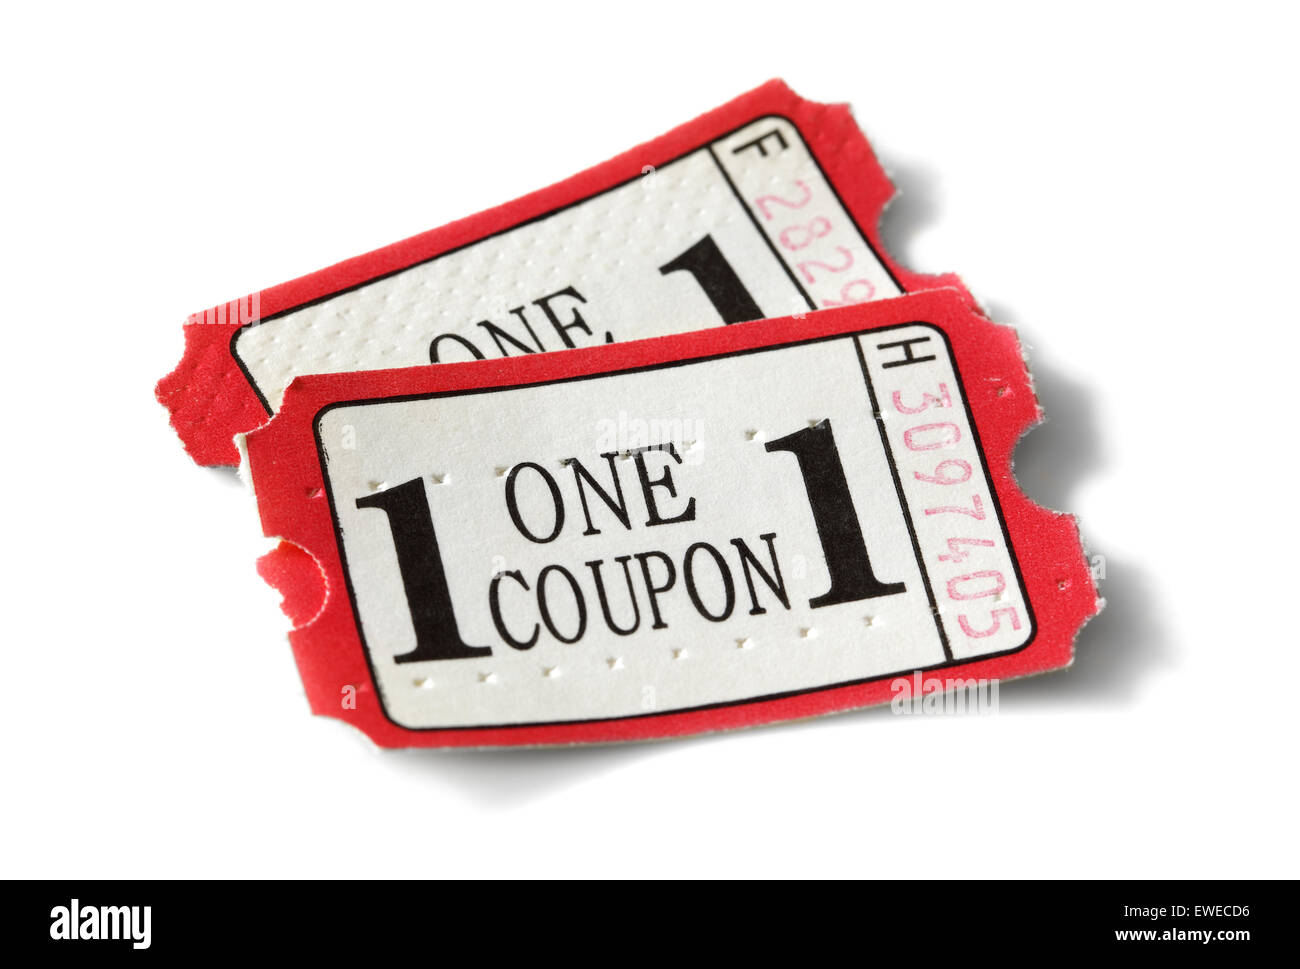 Admission coupon or ticket isolated on white - Stock Image